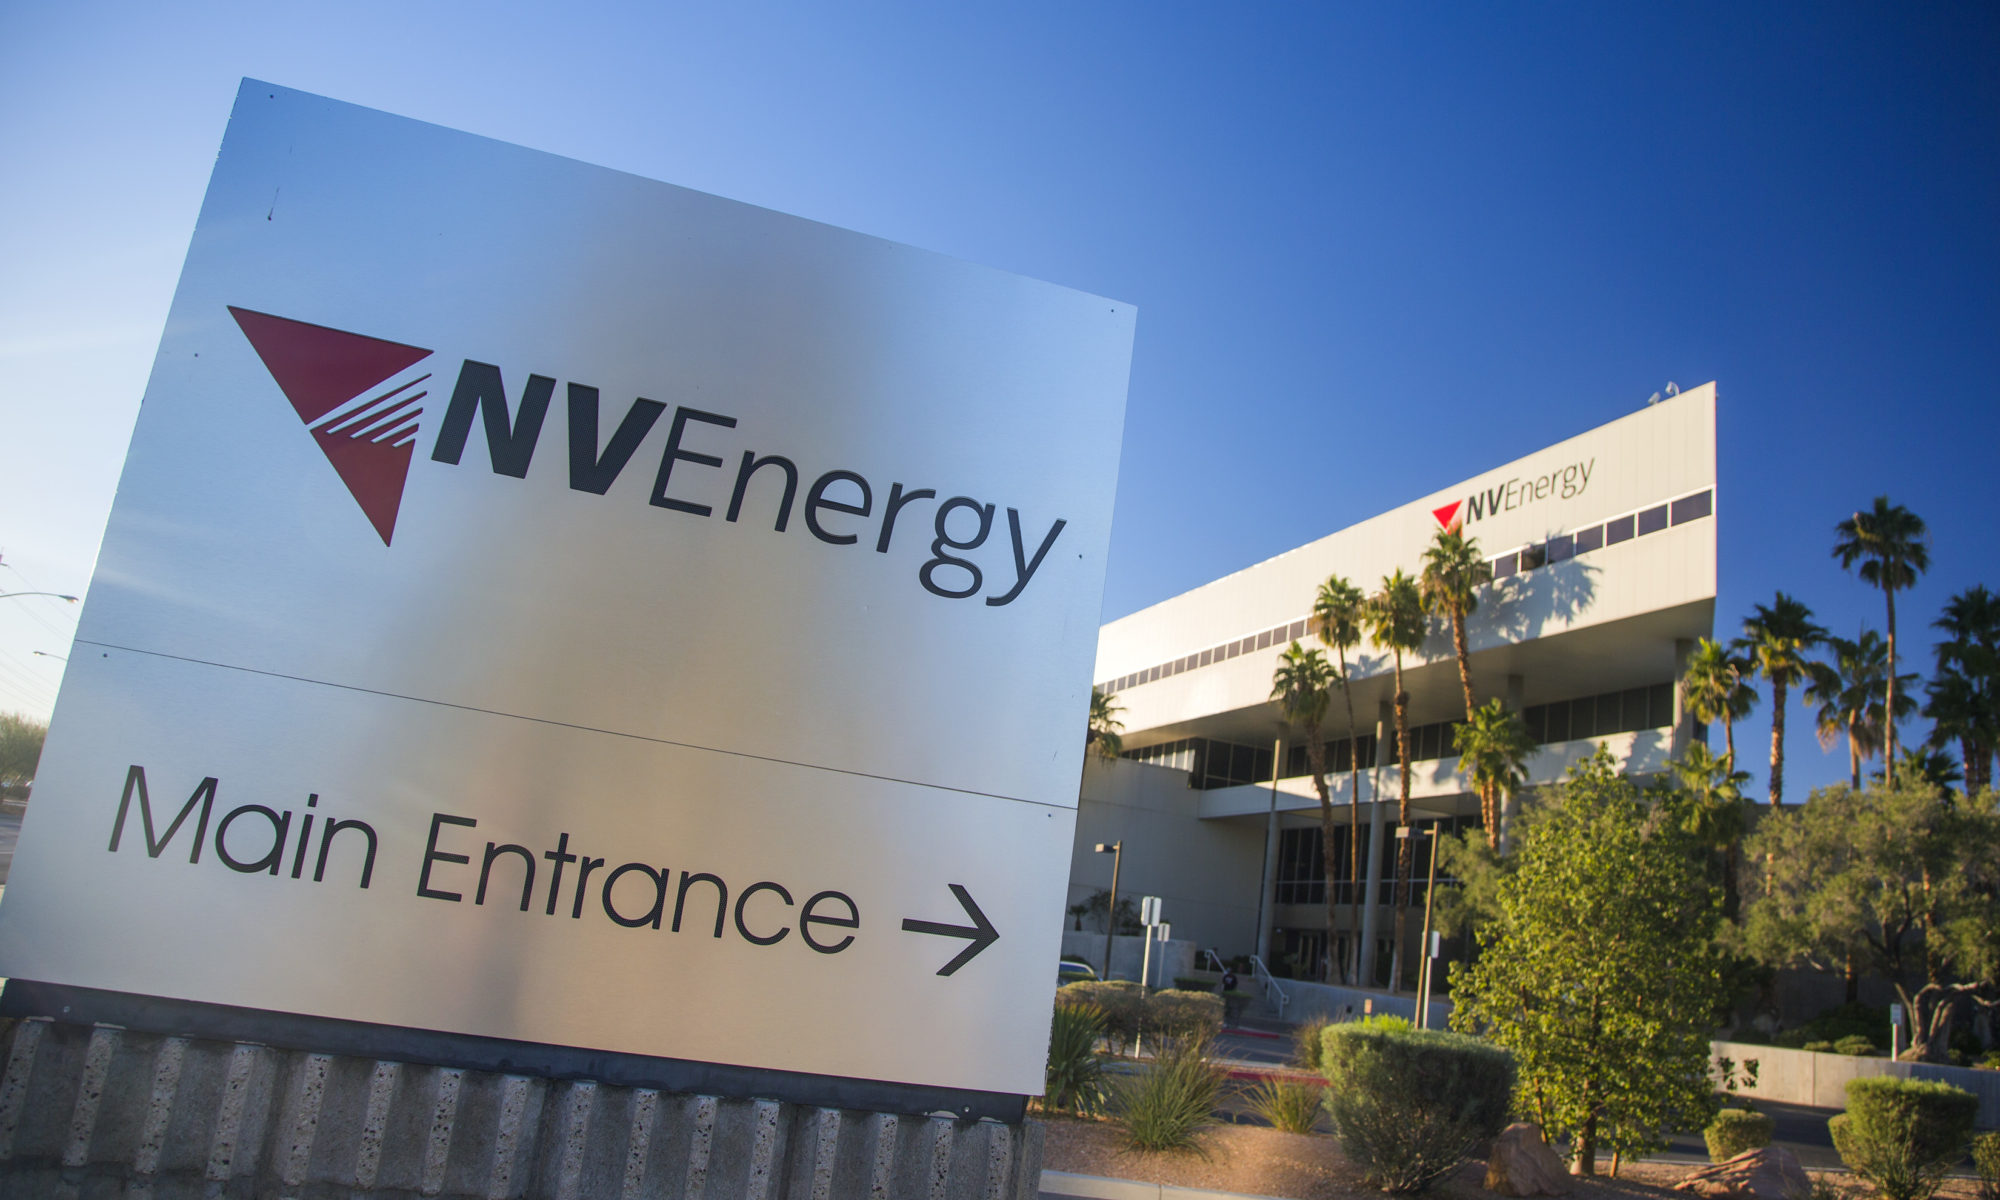 Station Casinos, biofuels company apply to leave NV Energy - The ...